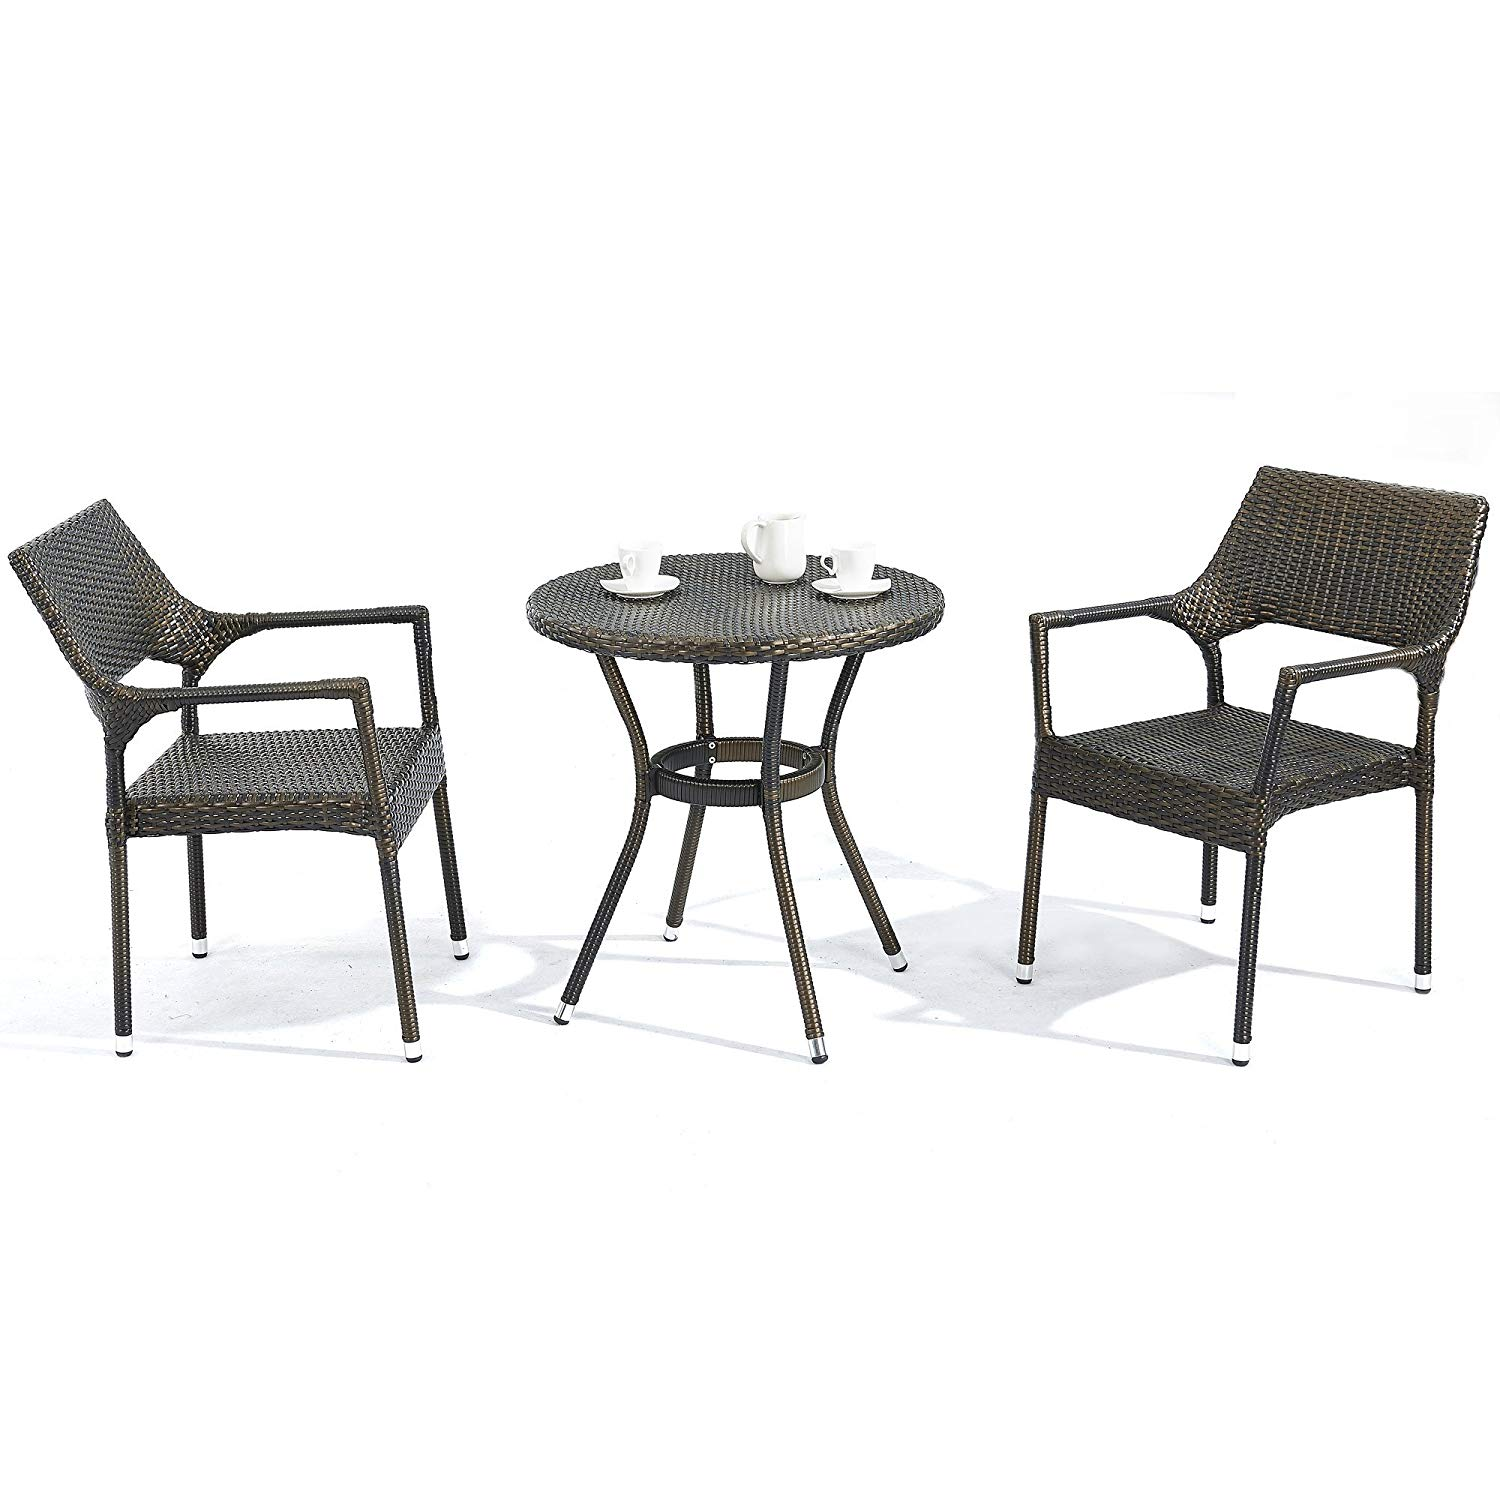 88ef354ee44f2 Get Quotations · D+ Garden 3-Piece Bistro Table Set for Patio Balcony and  Pub, Resin Wicker